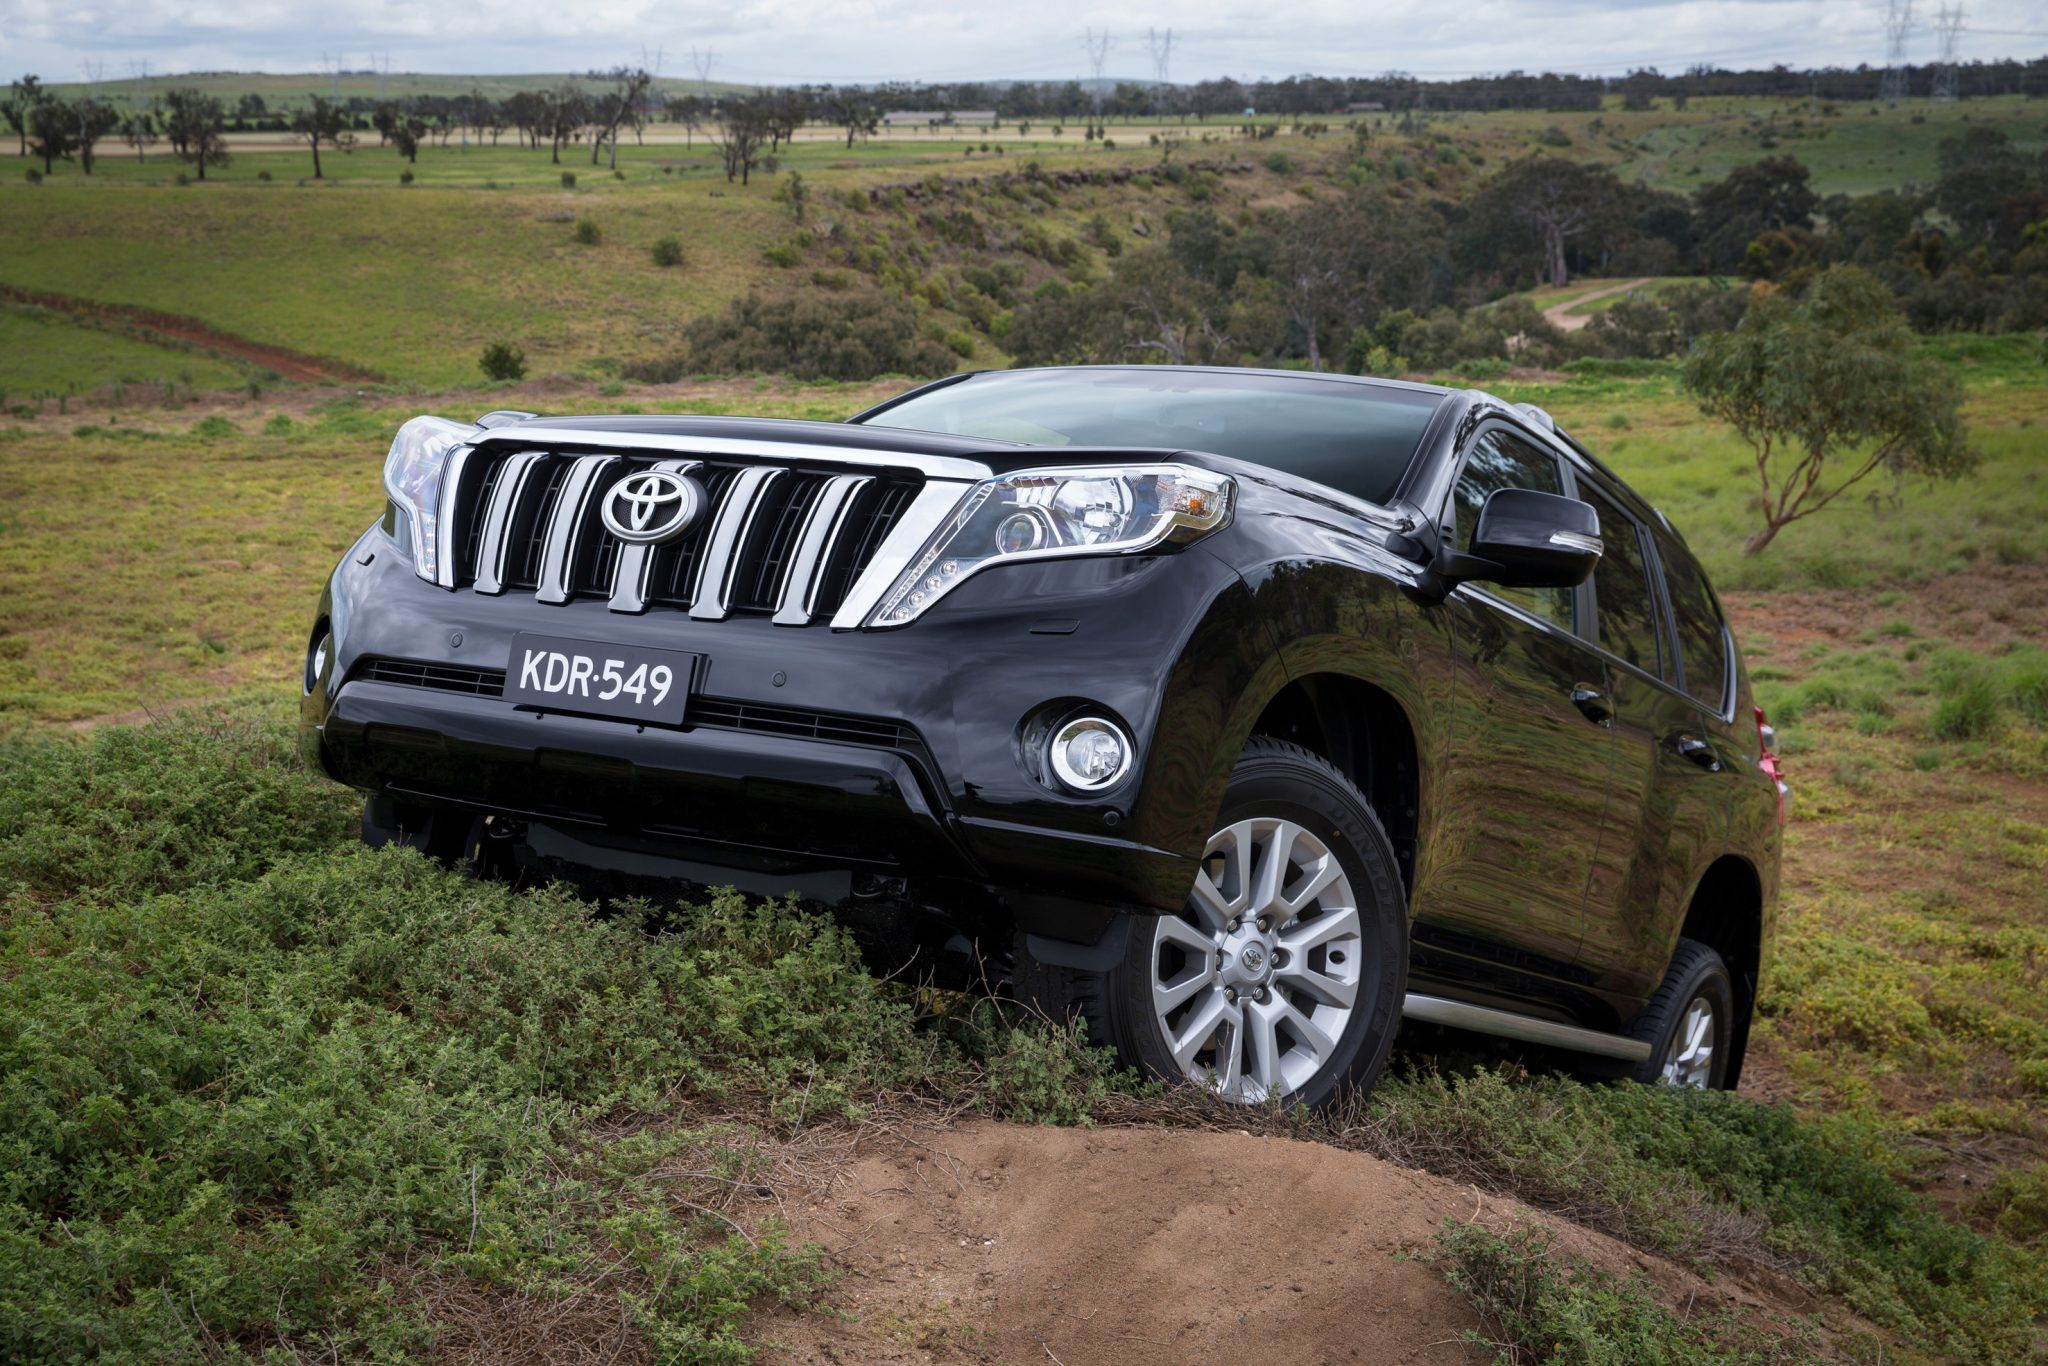 Toyota Cars - News: 2014 LandCruiser Prado updated